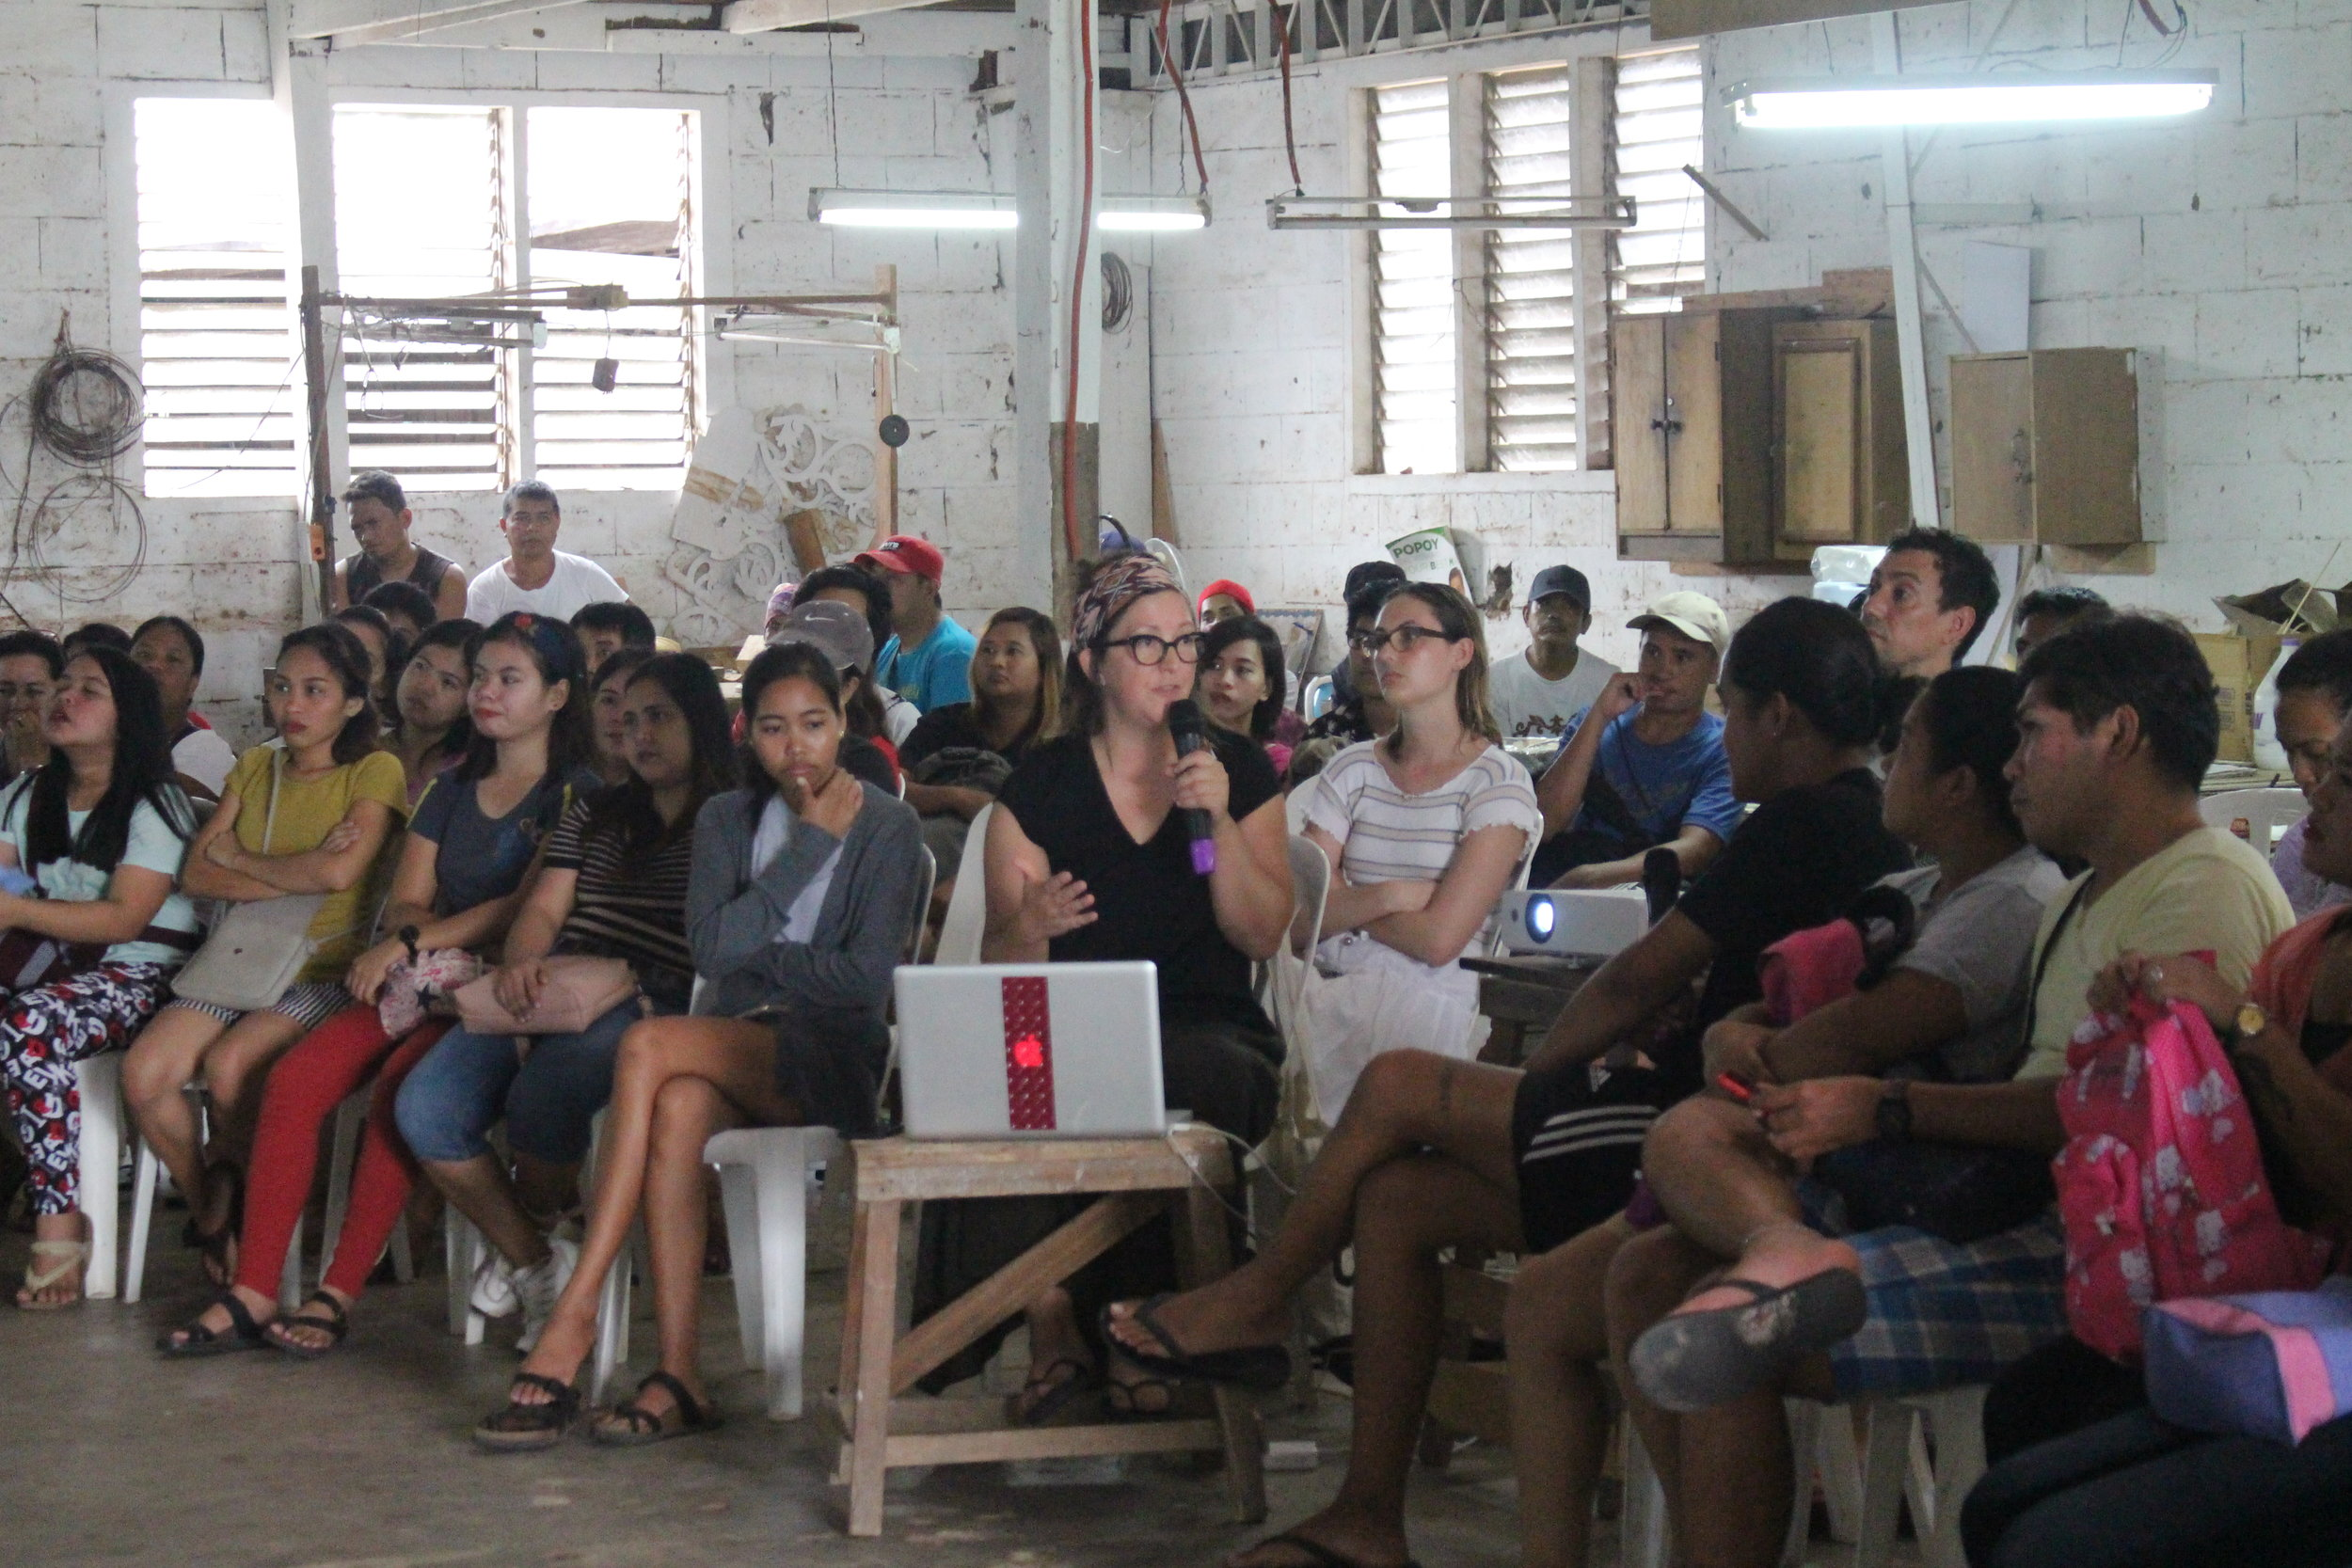 May 11, 2019 (Saturday), to conclude her residency, Leyla Cárdenas gave an artist talk in the artisan workshops of Las Casas Filipinas de Acuzar.